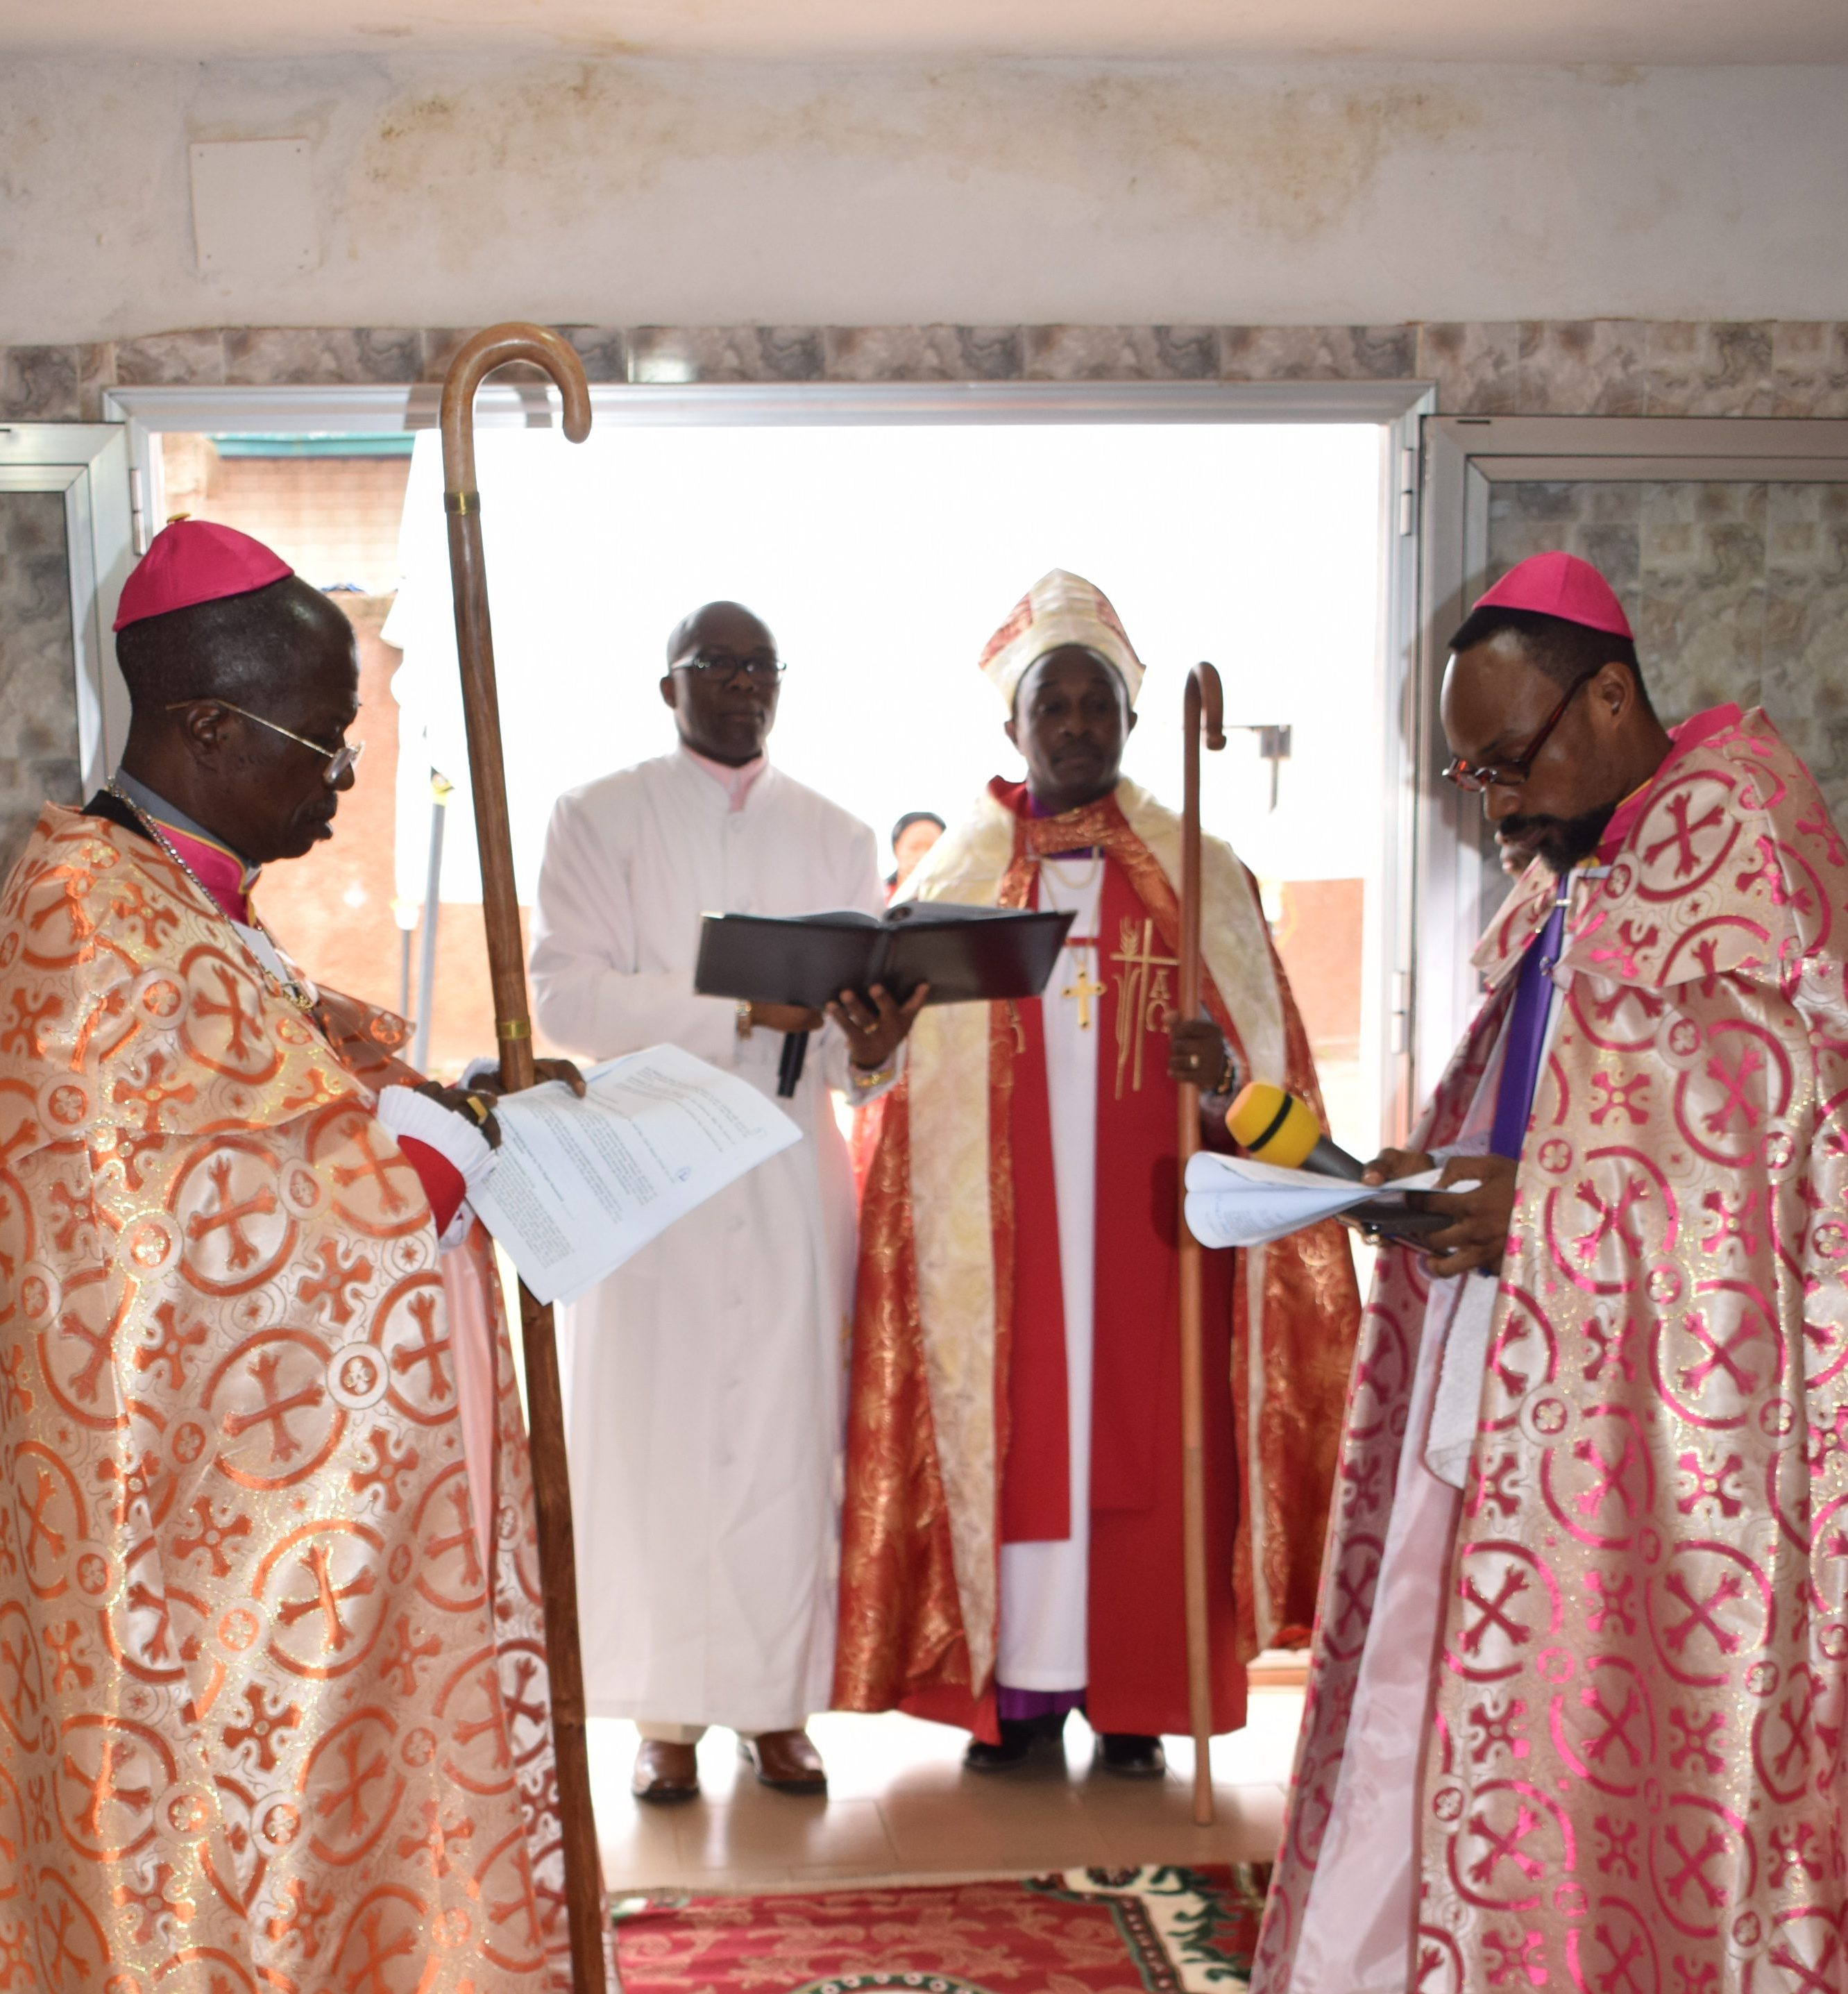 Archbishop William Installation service